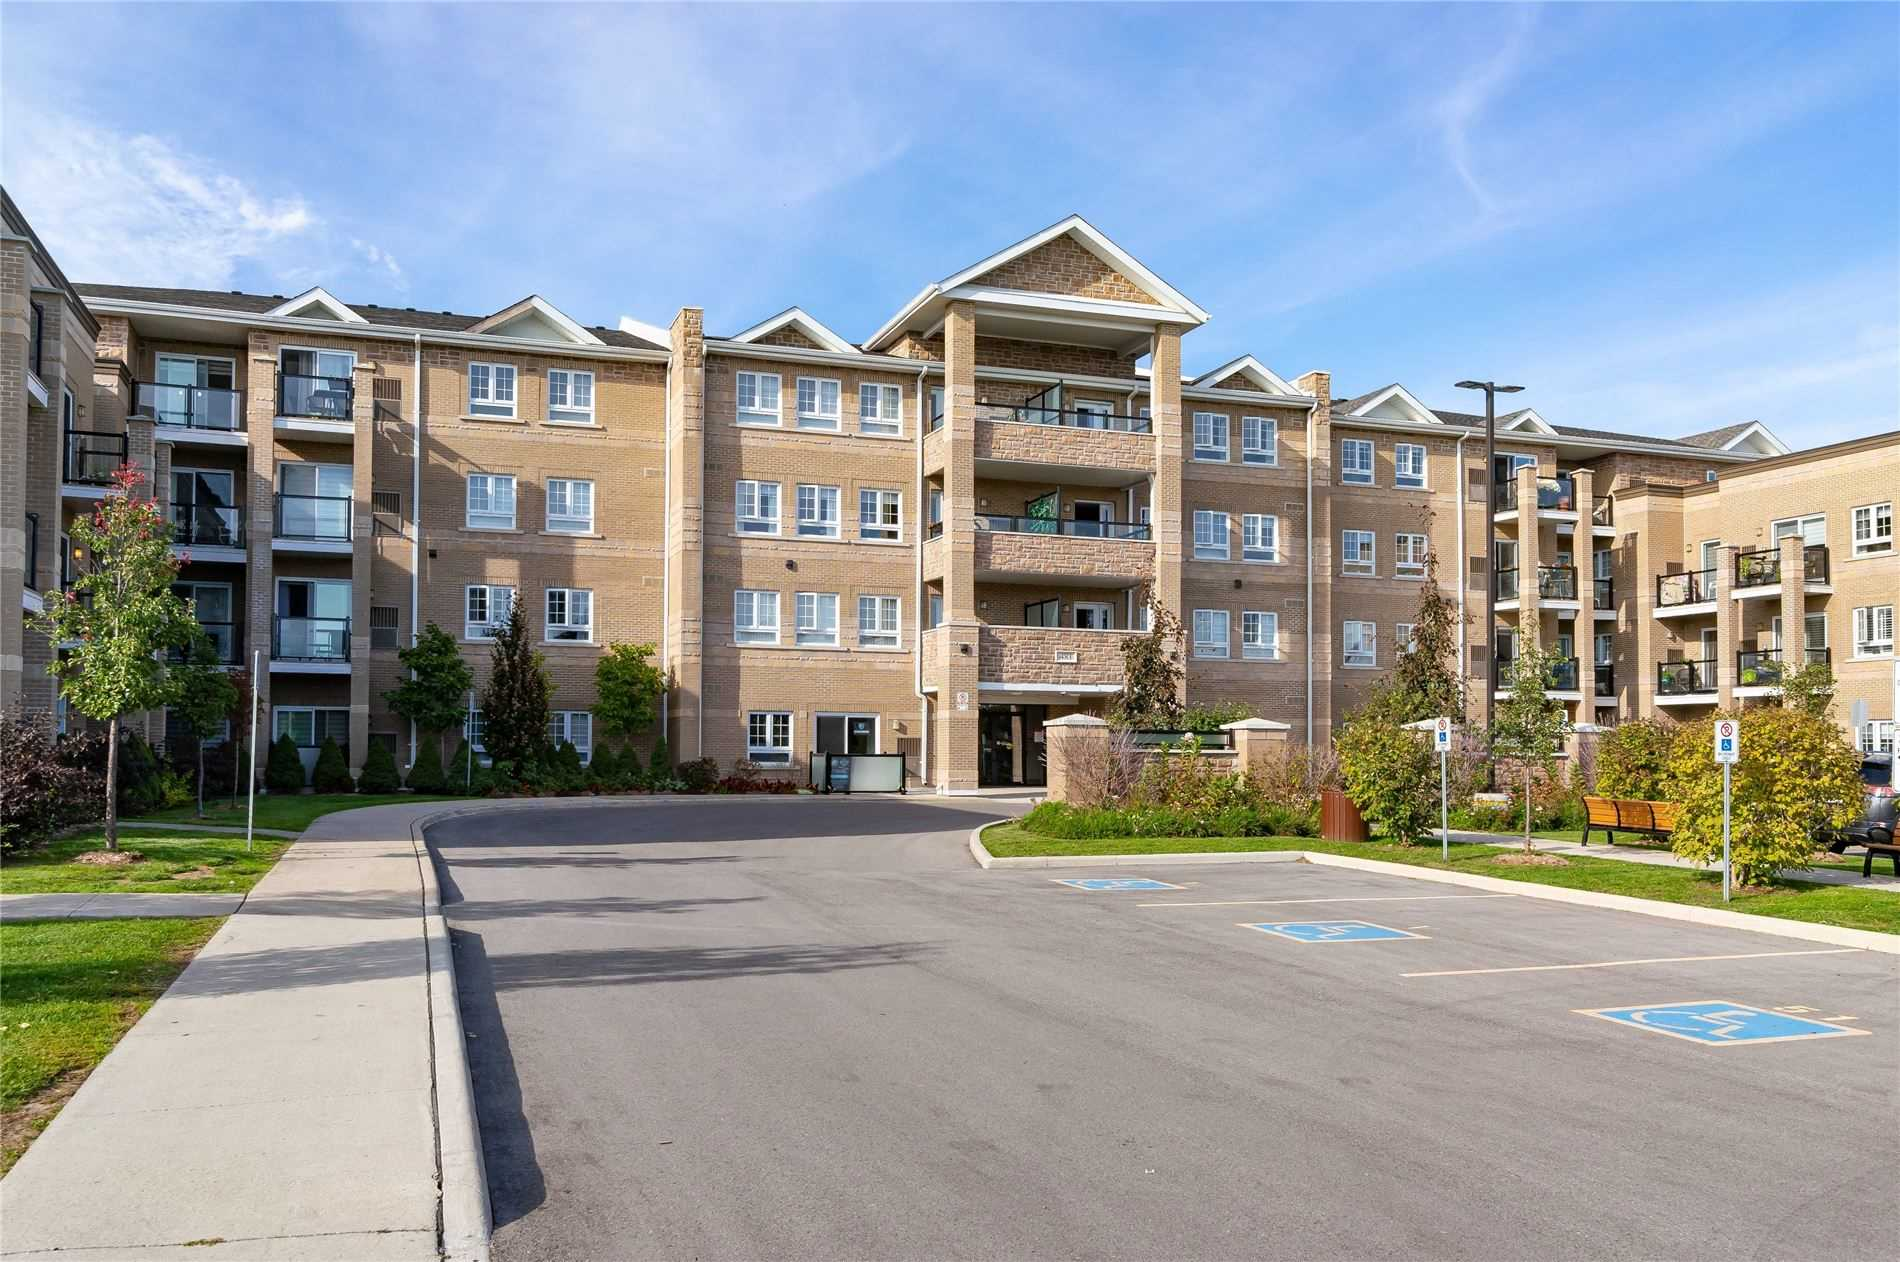 pictures of 481 Rupert Ave, Whitchurch-Stouffville L4A1Y7